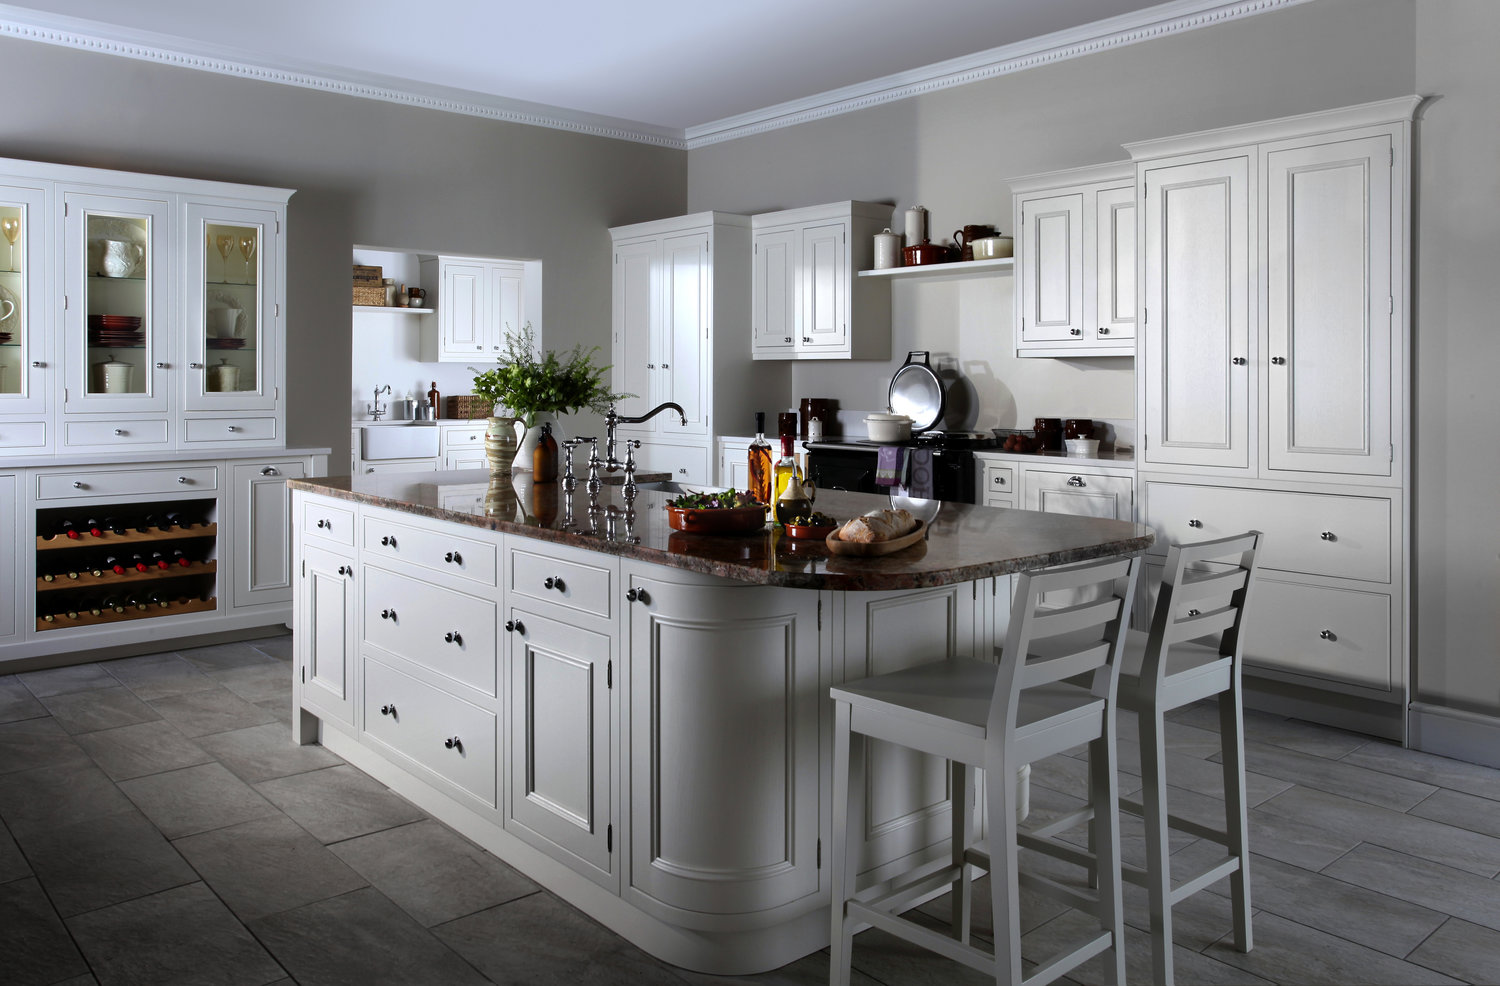 nothing beats the stylish looks of a classic in-frame kitchen.